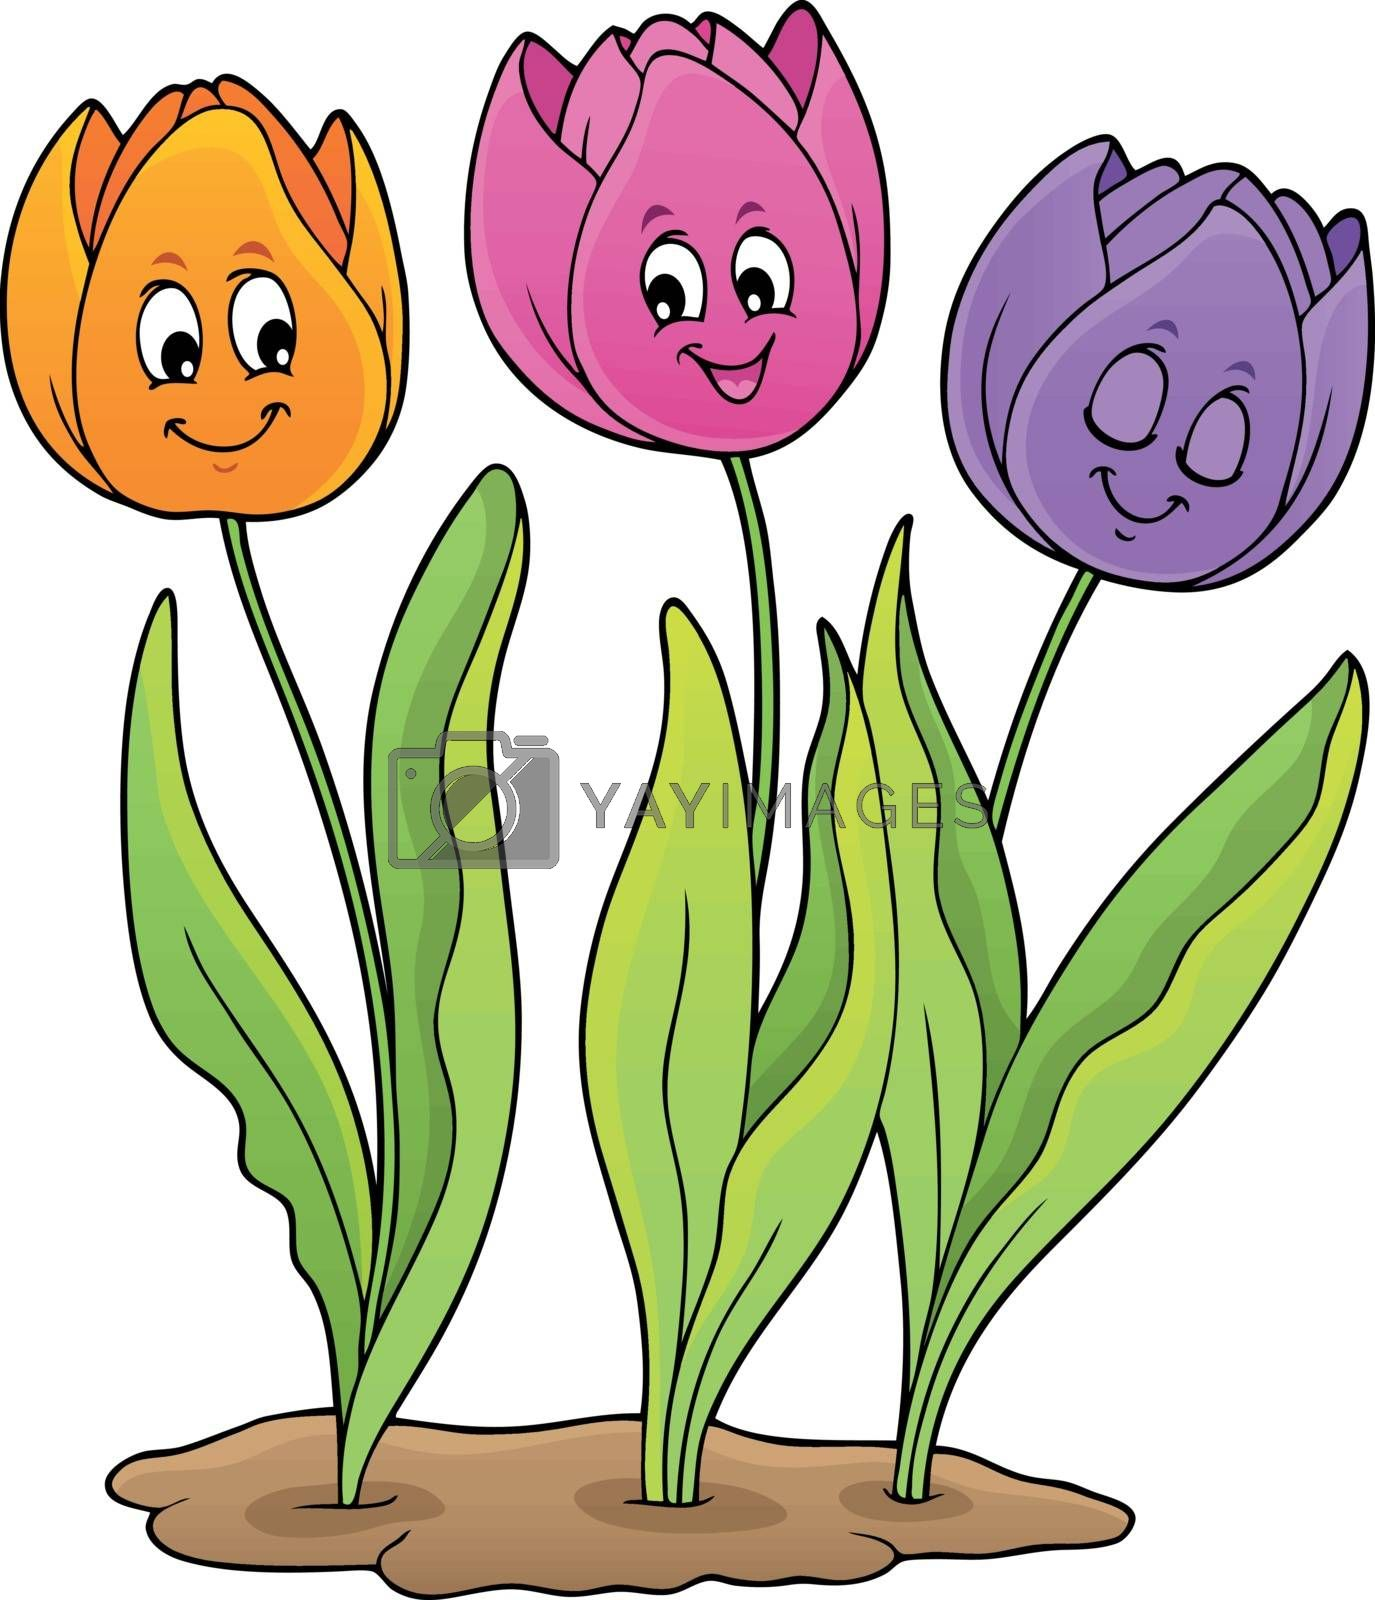 Image with tulip flower theme 5 - eps10 vector illustration.